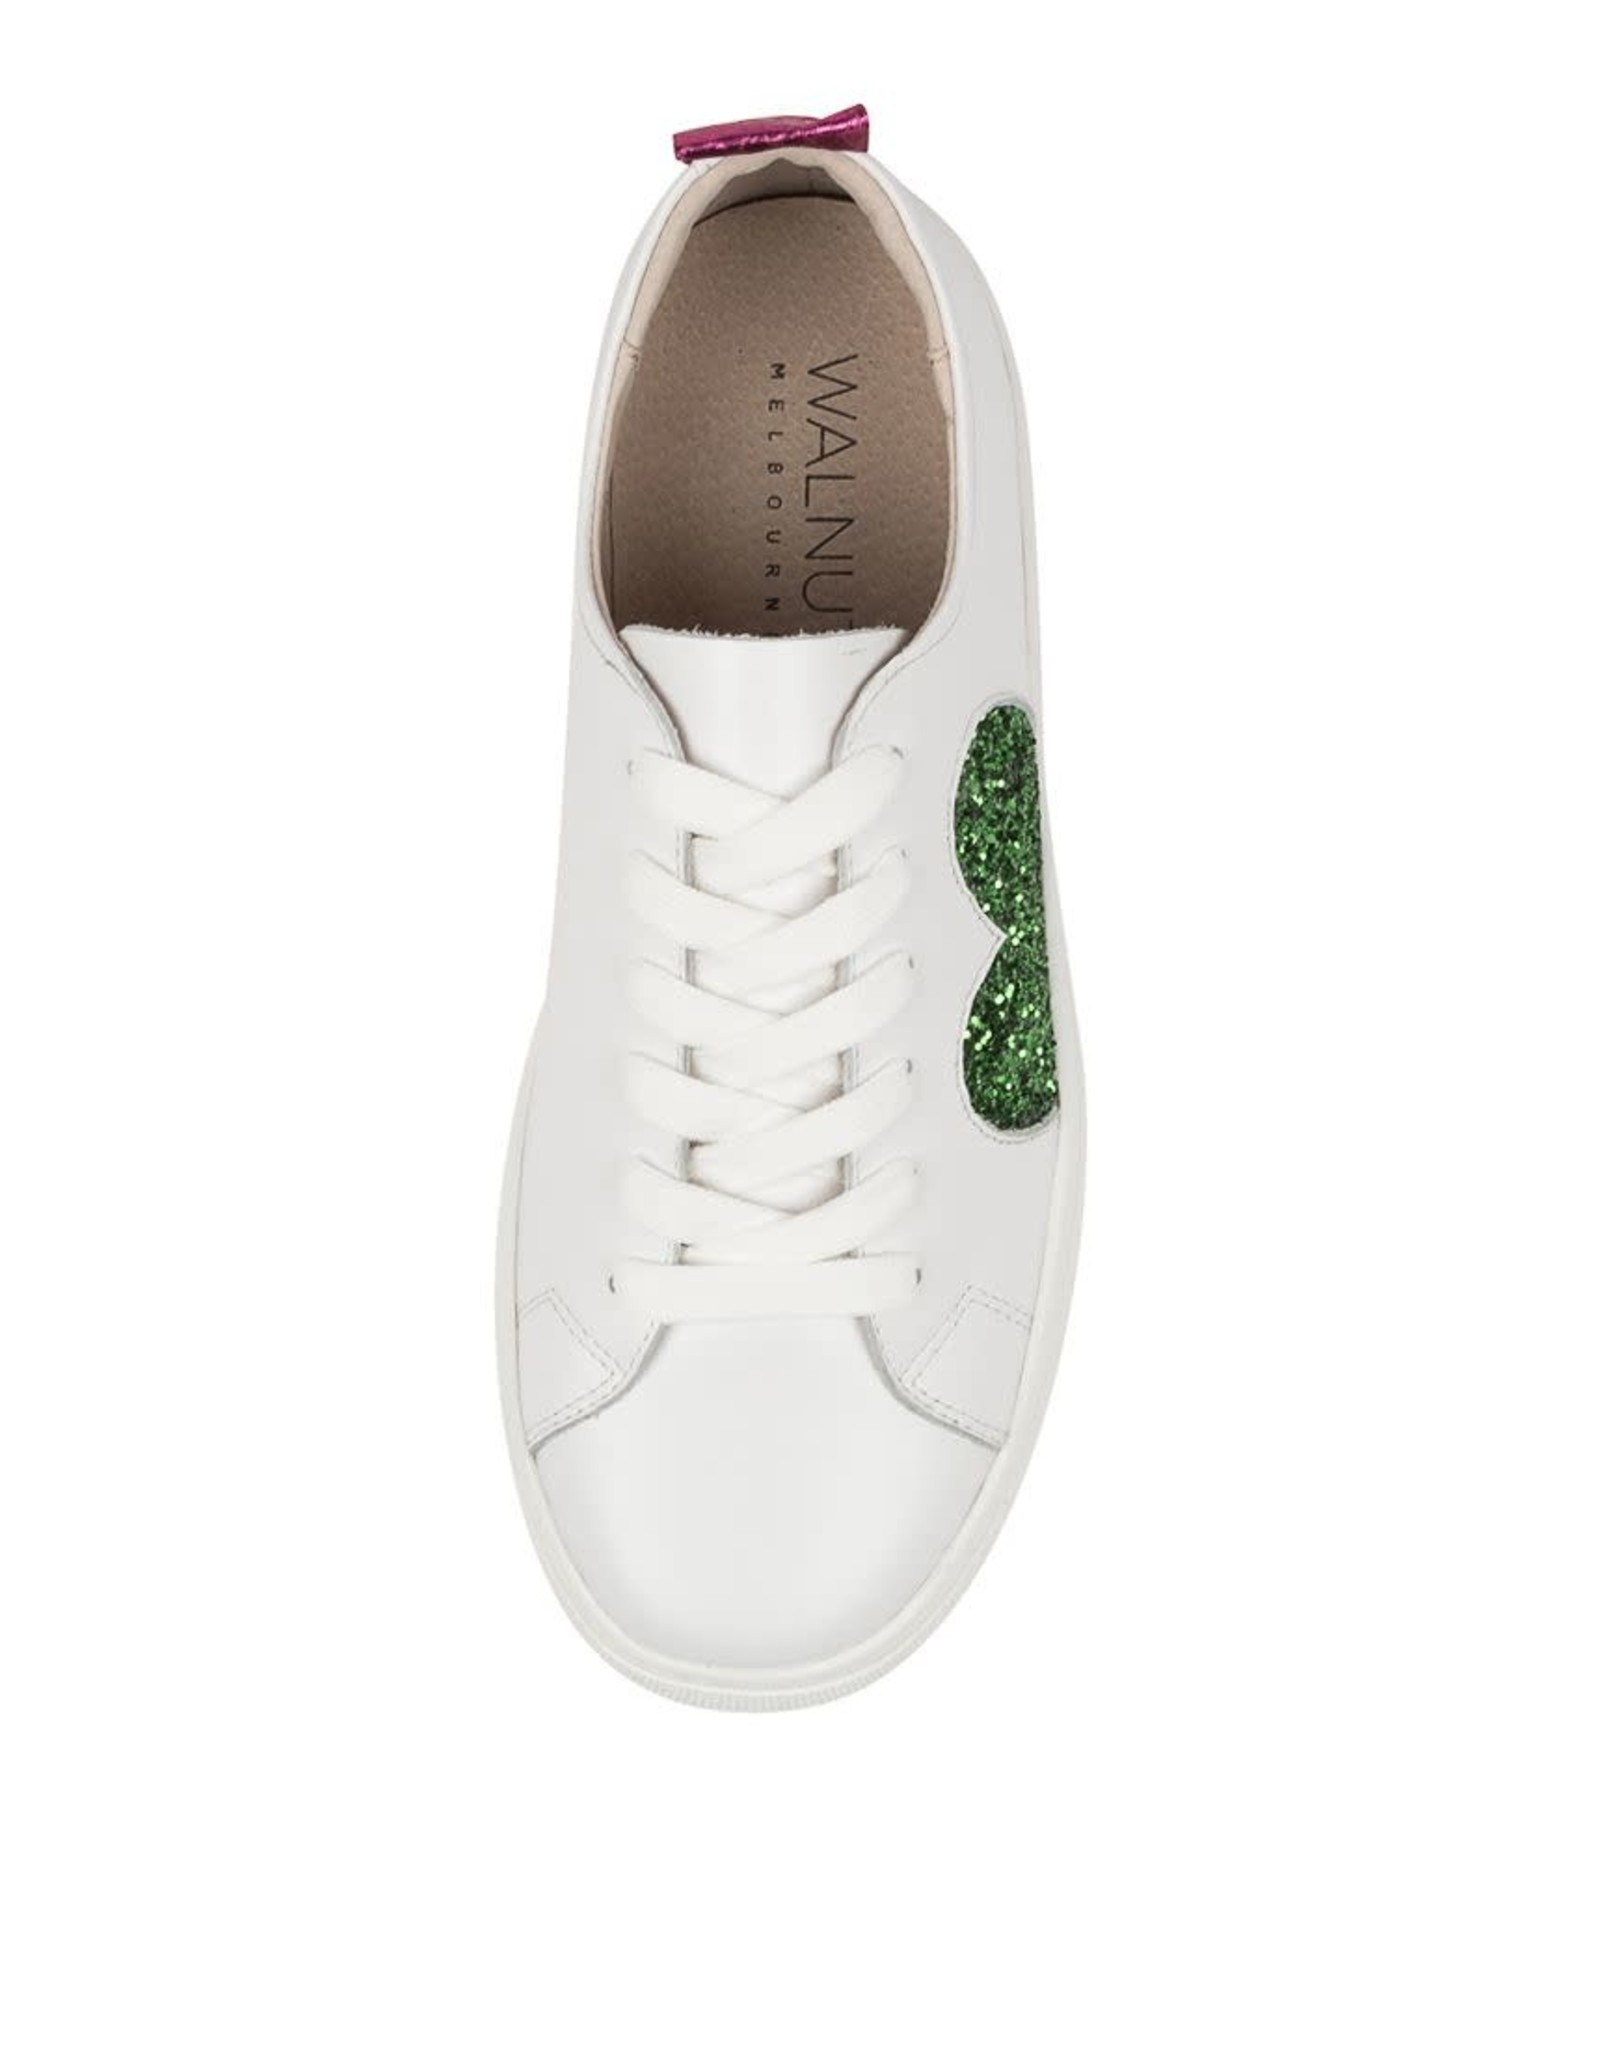 WALNUT Walnut - White Leather Sneaker (Green Glitter Heart)